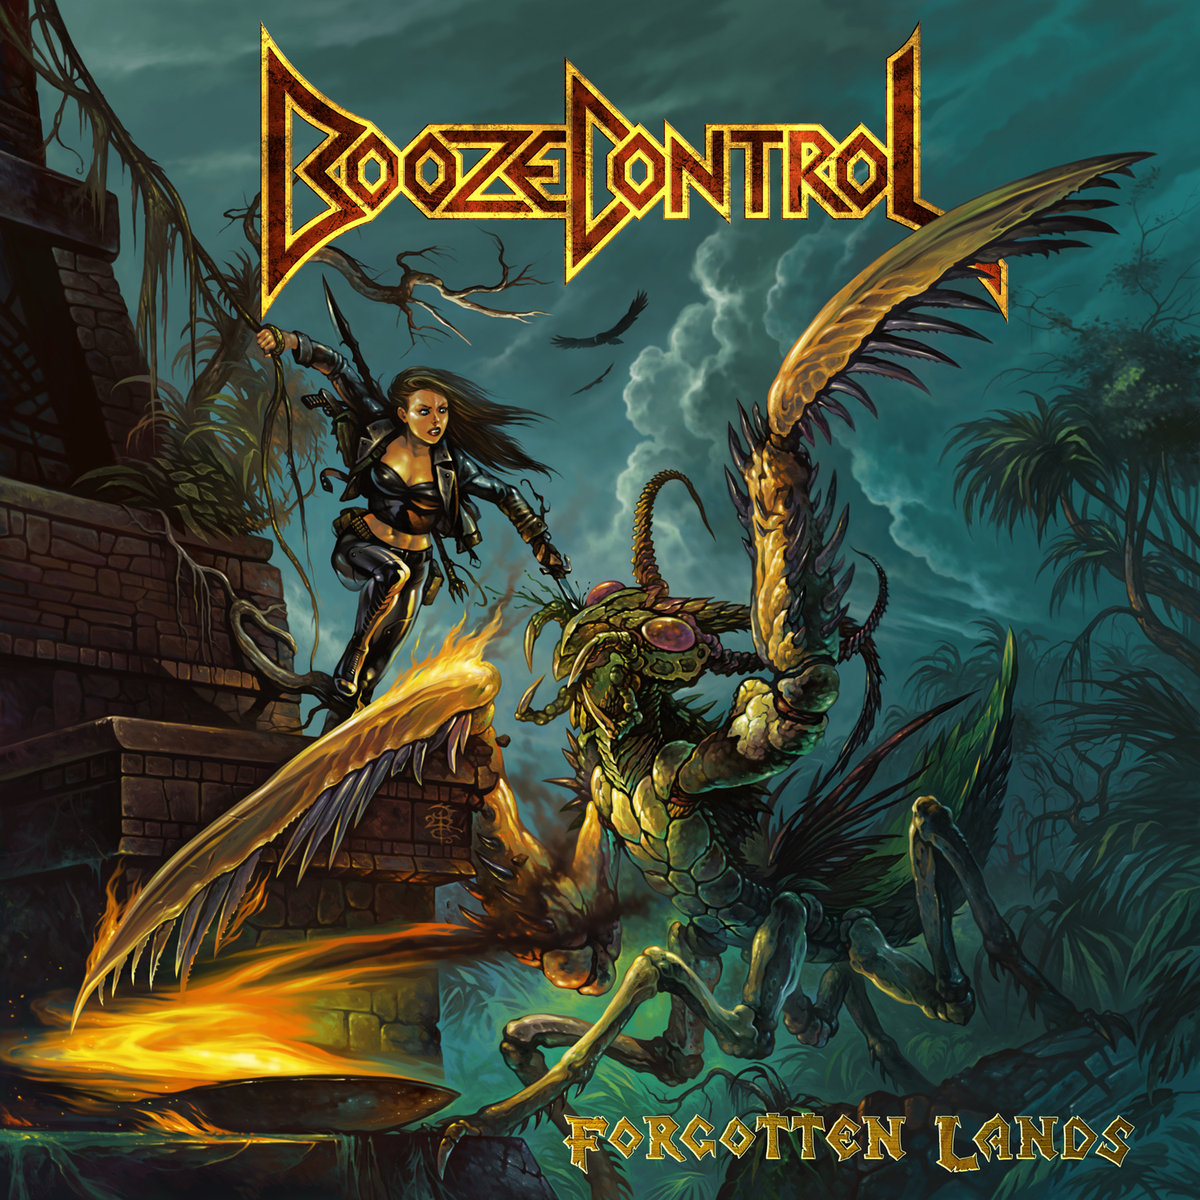 BOOZE CONTROL Streaming Title Track from 'Forgotten Lands'